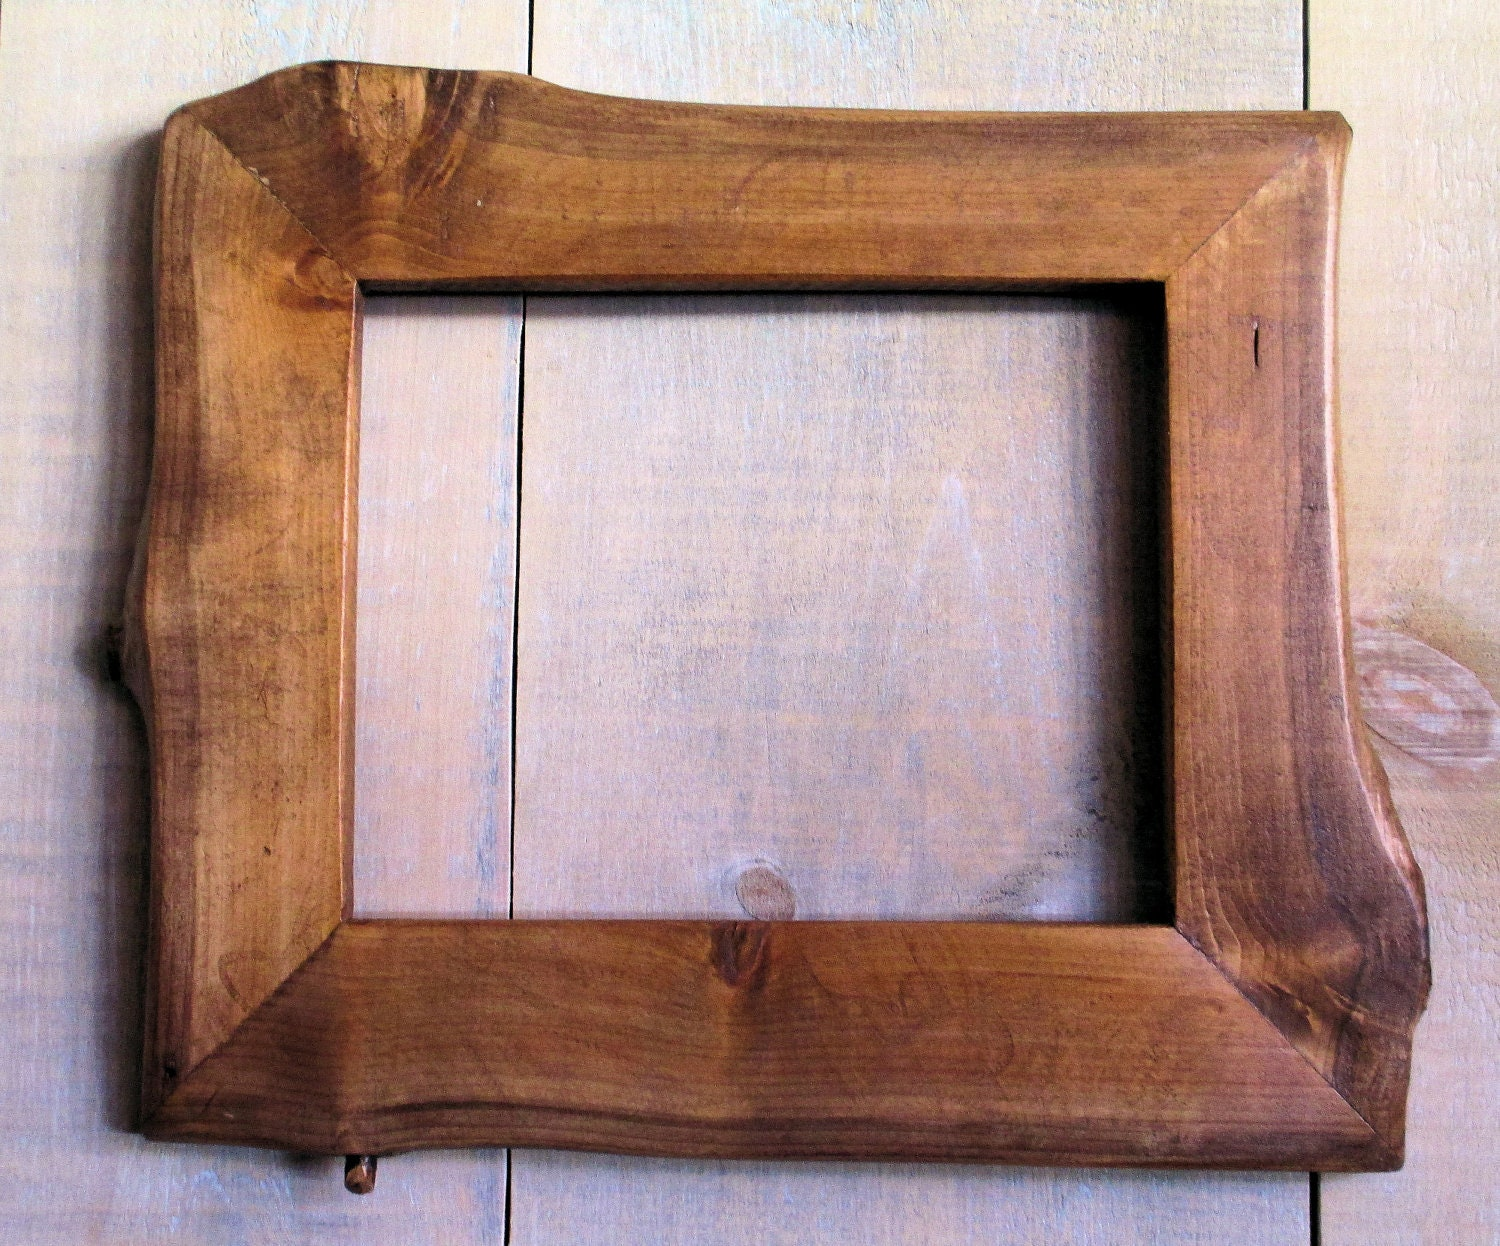 Handmade Rustic Wood Frame 7 12 X 9 34 on olive green wood stain